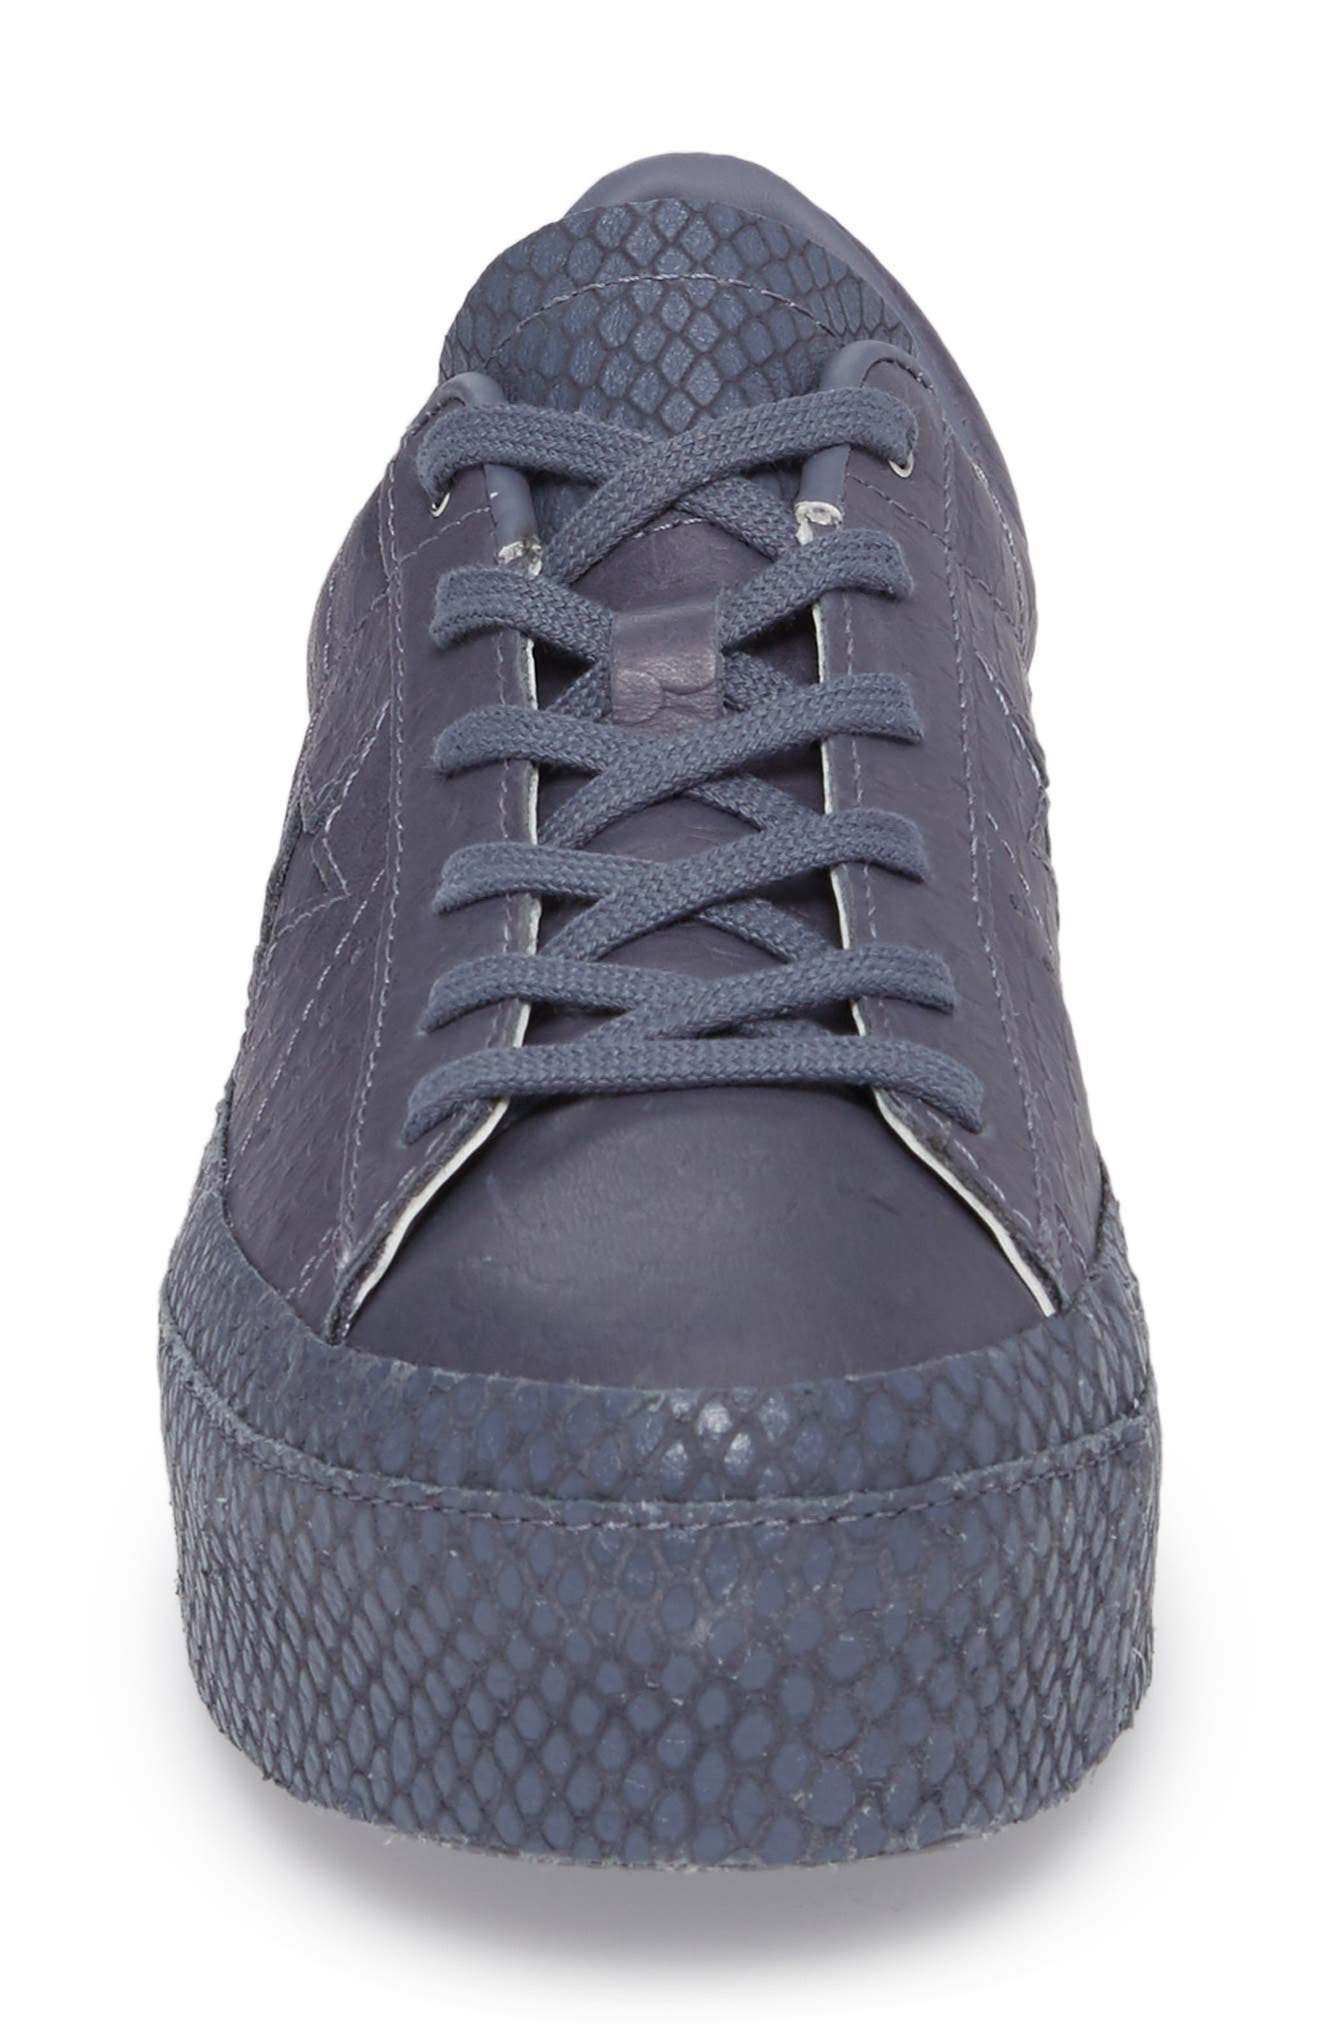 Chuck Taylor<sup>®</sup> All Star<sup>®</sup> One Star Platform Sneaker,                             Alternate thumbnail 4, color,                             Light Carbon